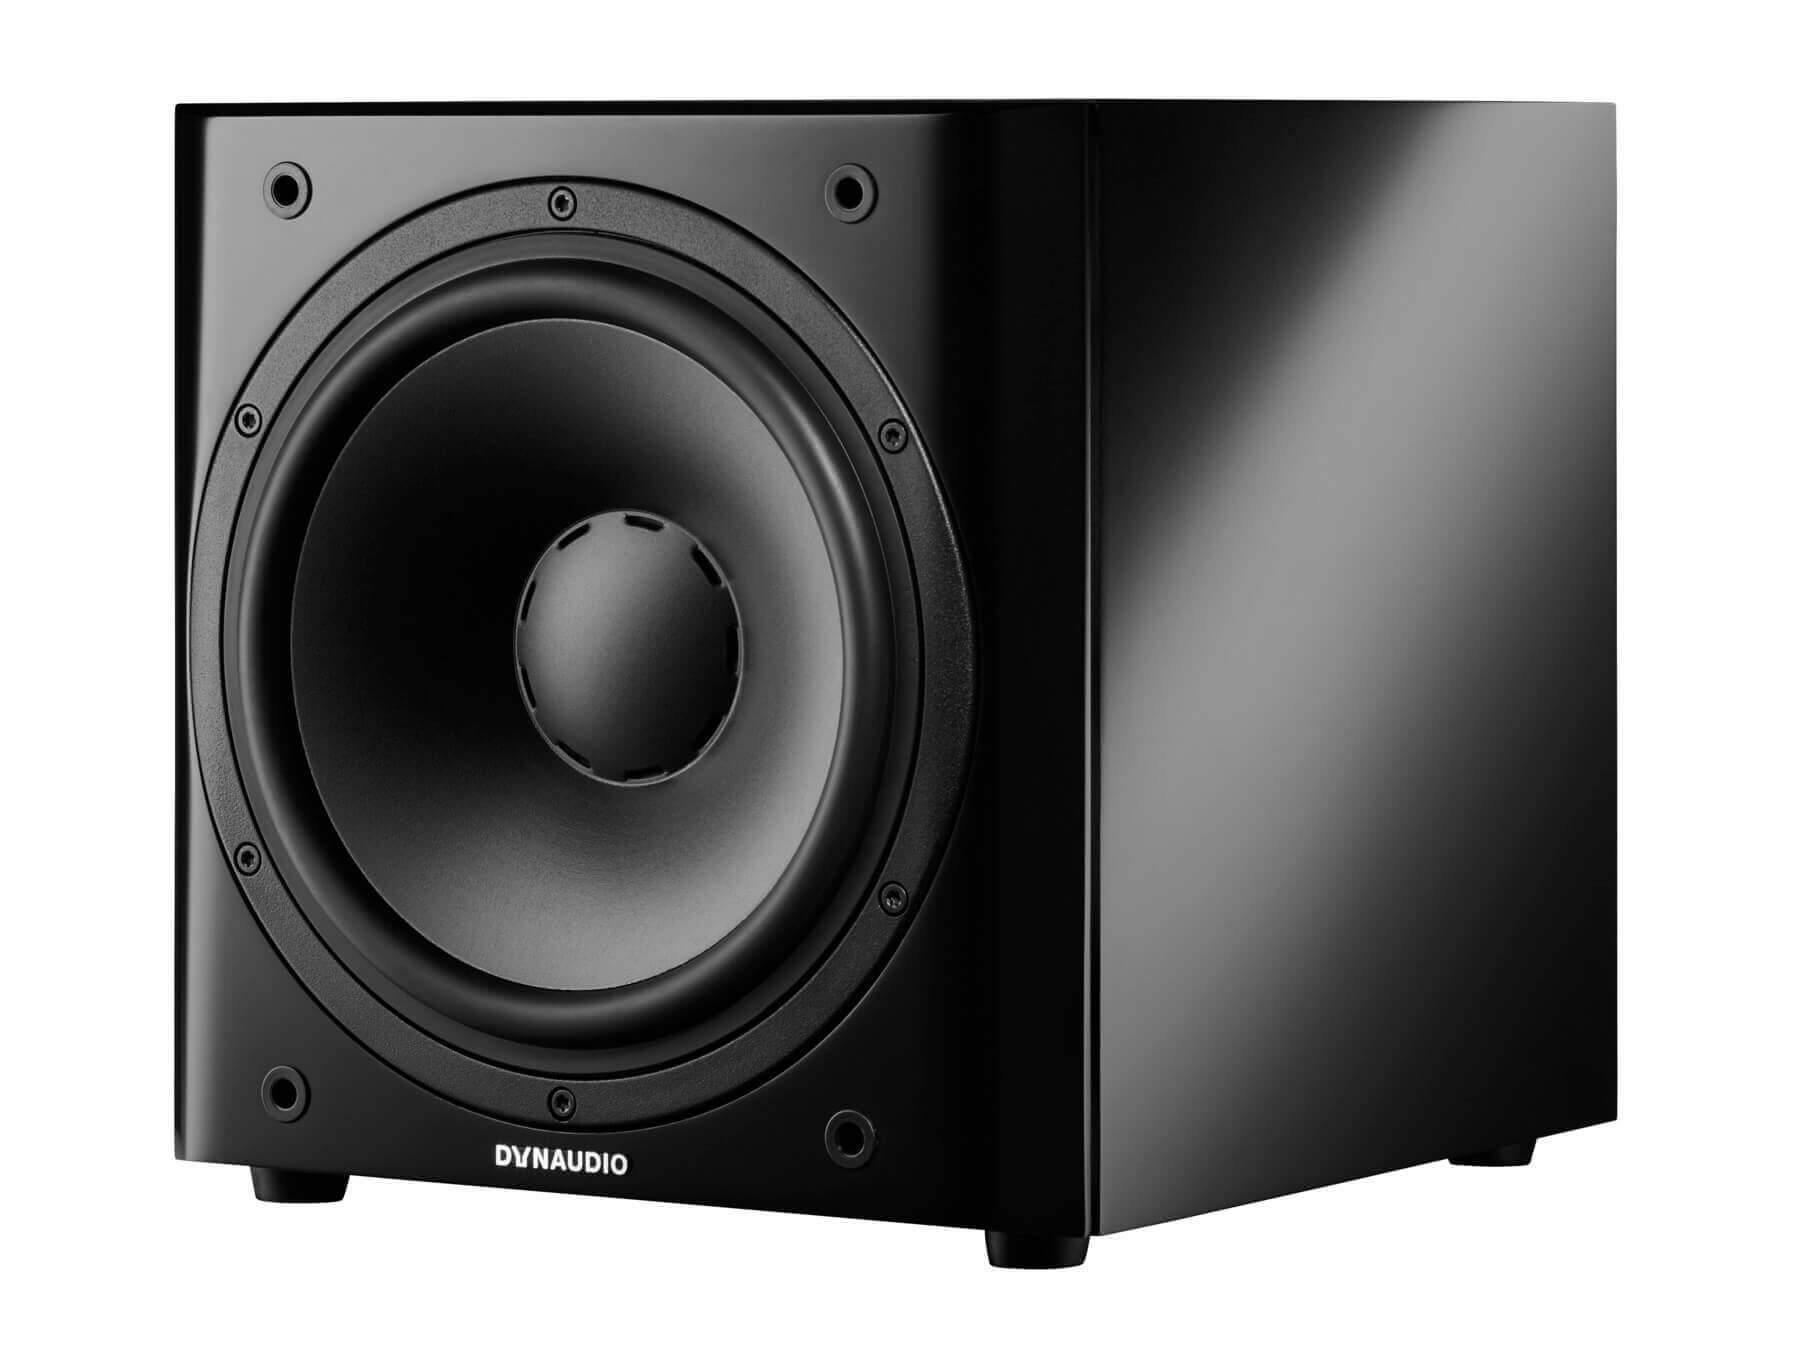 Dynaudio Sub 3 - Subwoofer - Black